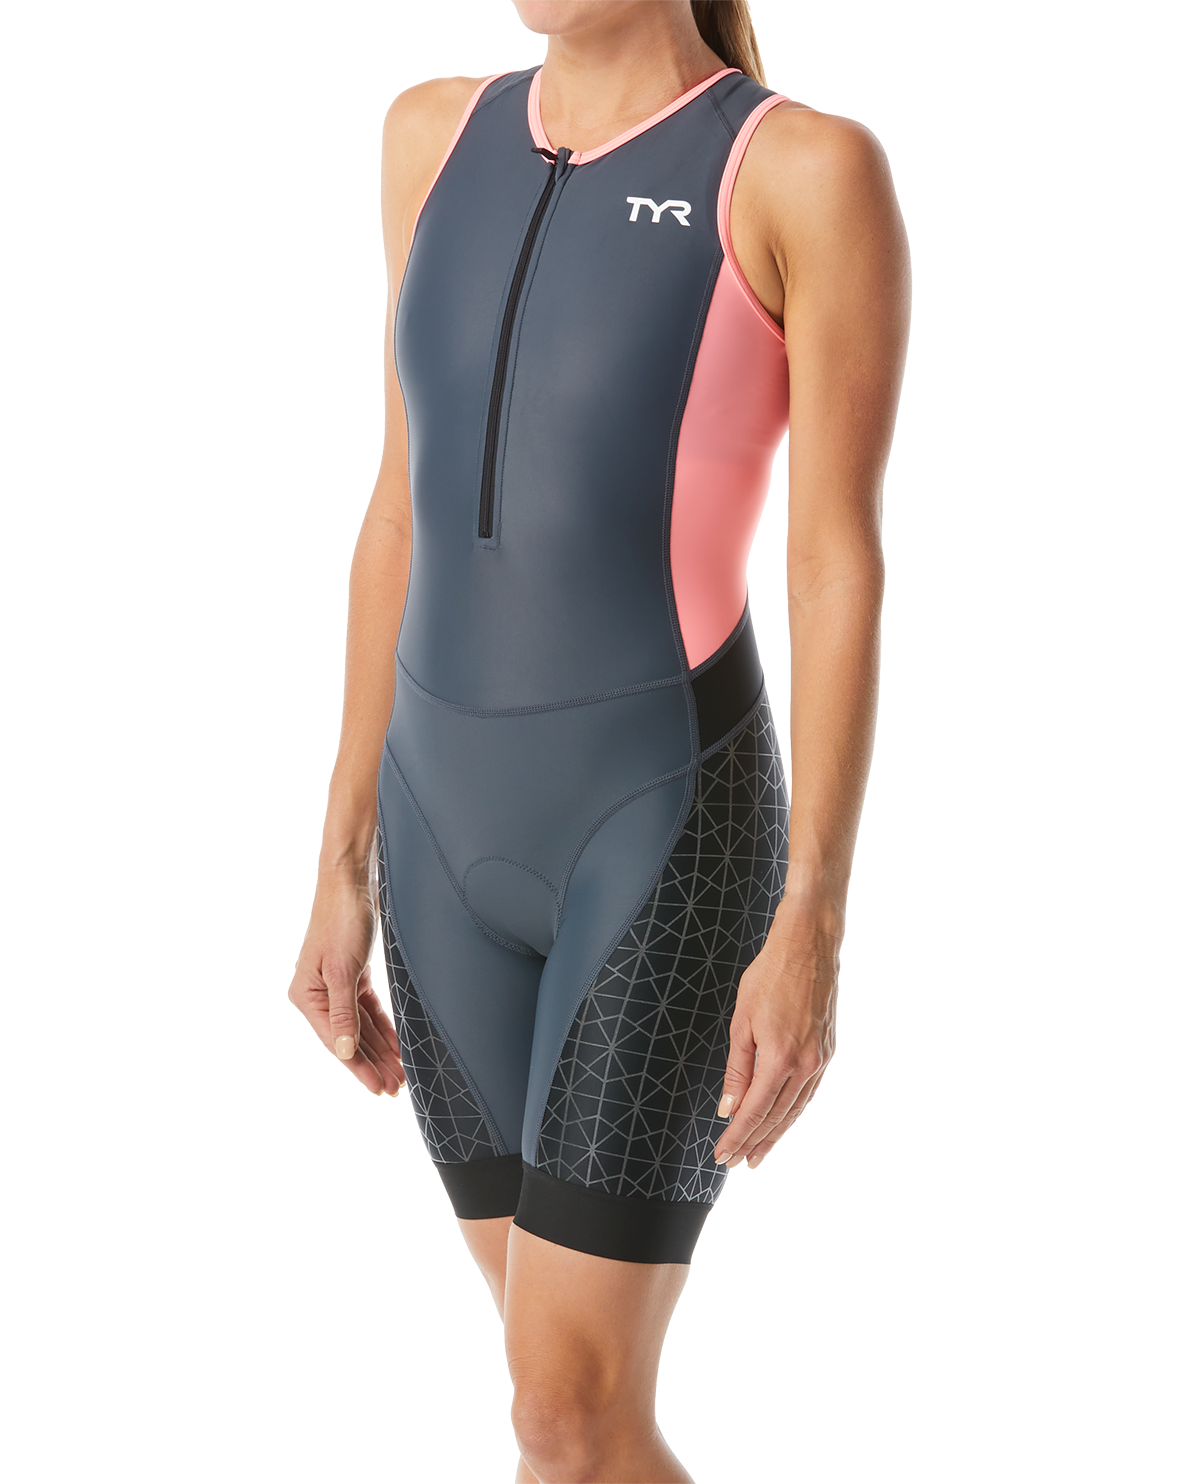 058b35c52d TYR Women's Competitor Tri suit   TYR